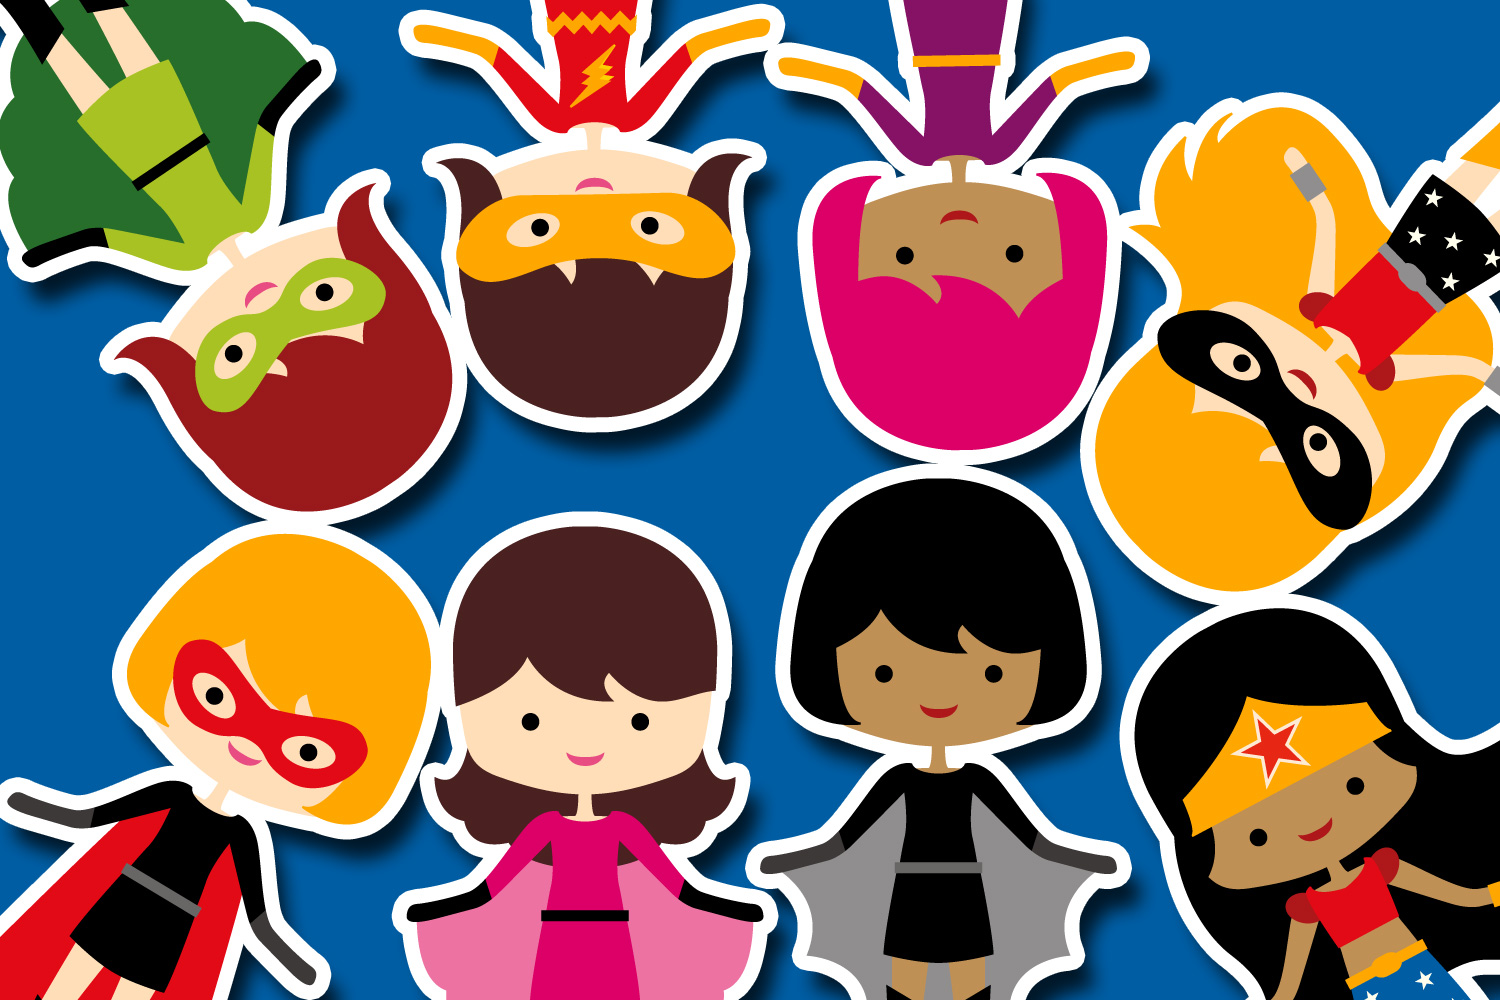 More girl superhero clipart graphics / superheroes girls example image 2